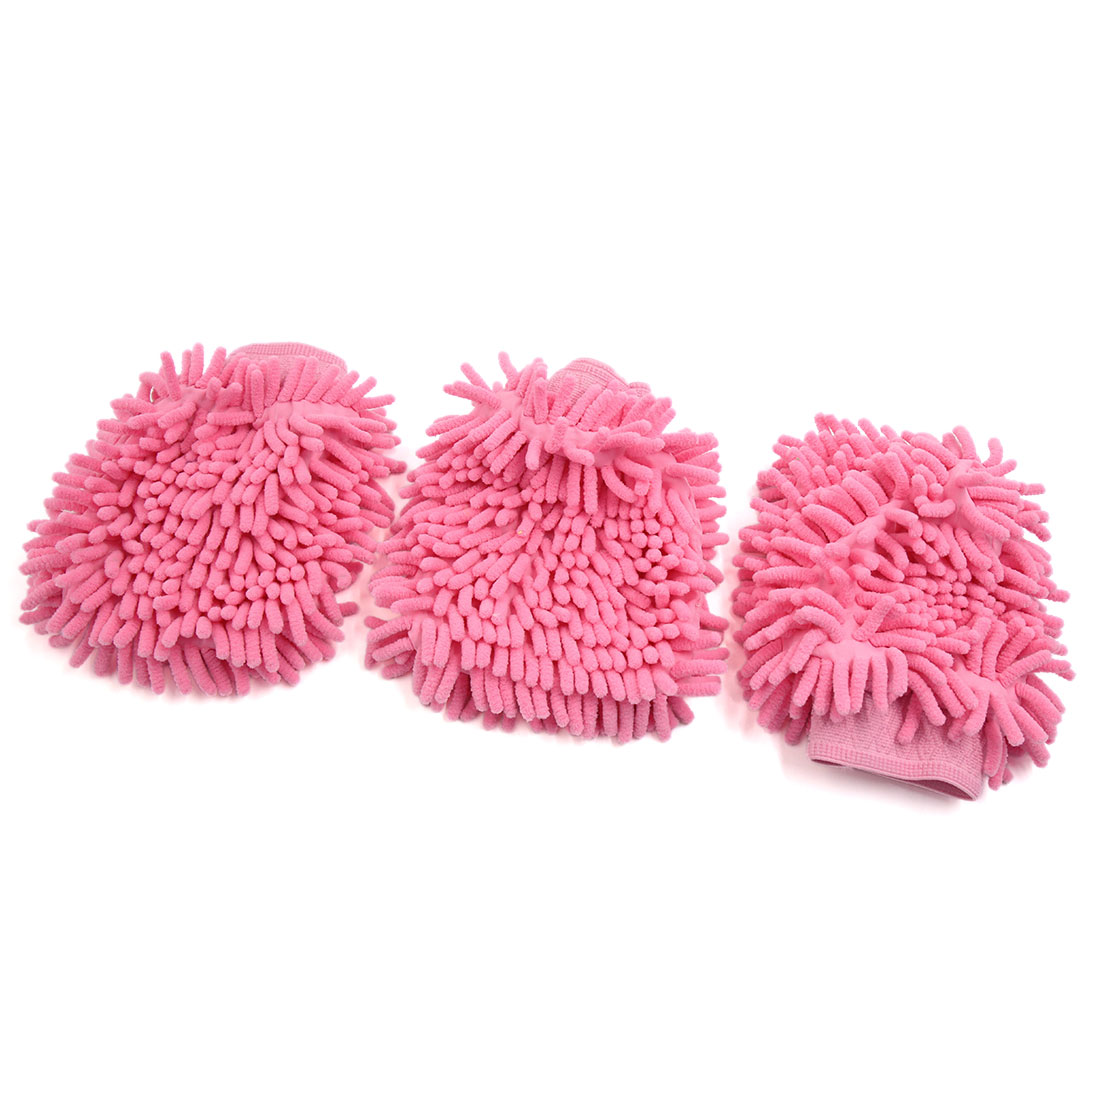 3 Pcs Pink Chenille Brush Washing Glove Dusting Cleaning Tool Sleeve for Car